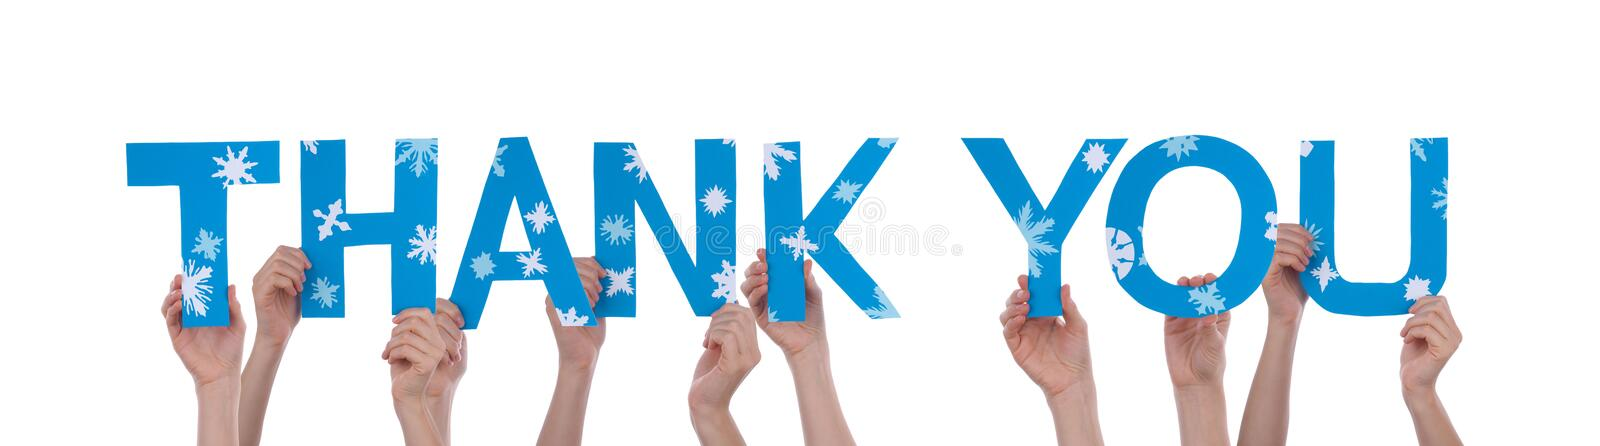 Download Hands Holding Thank You stock photo. Image of gratitude - 34878386